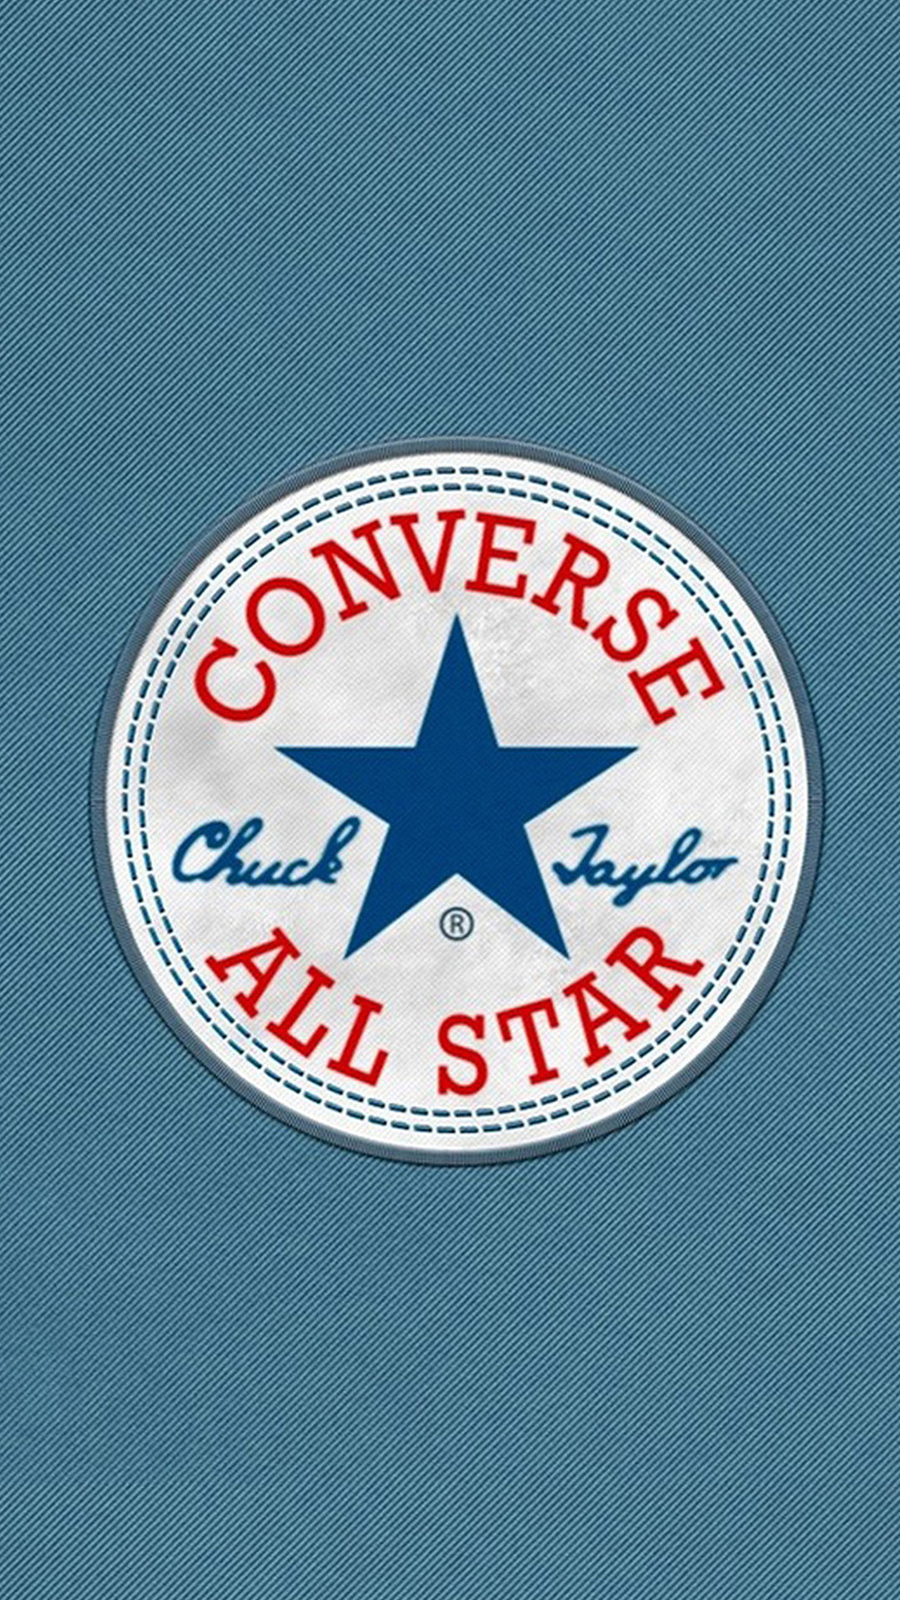 Converse All Star HD Wallpapers Free Download